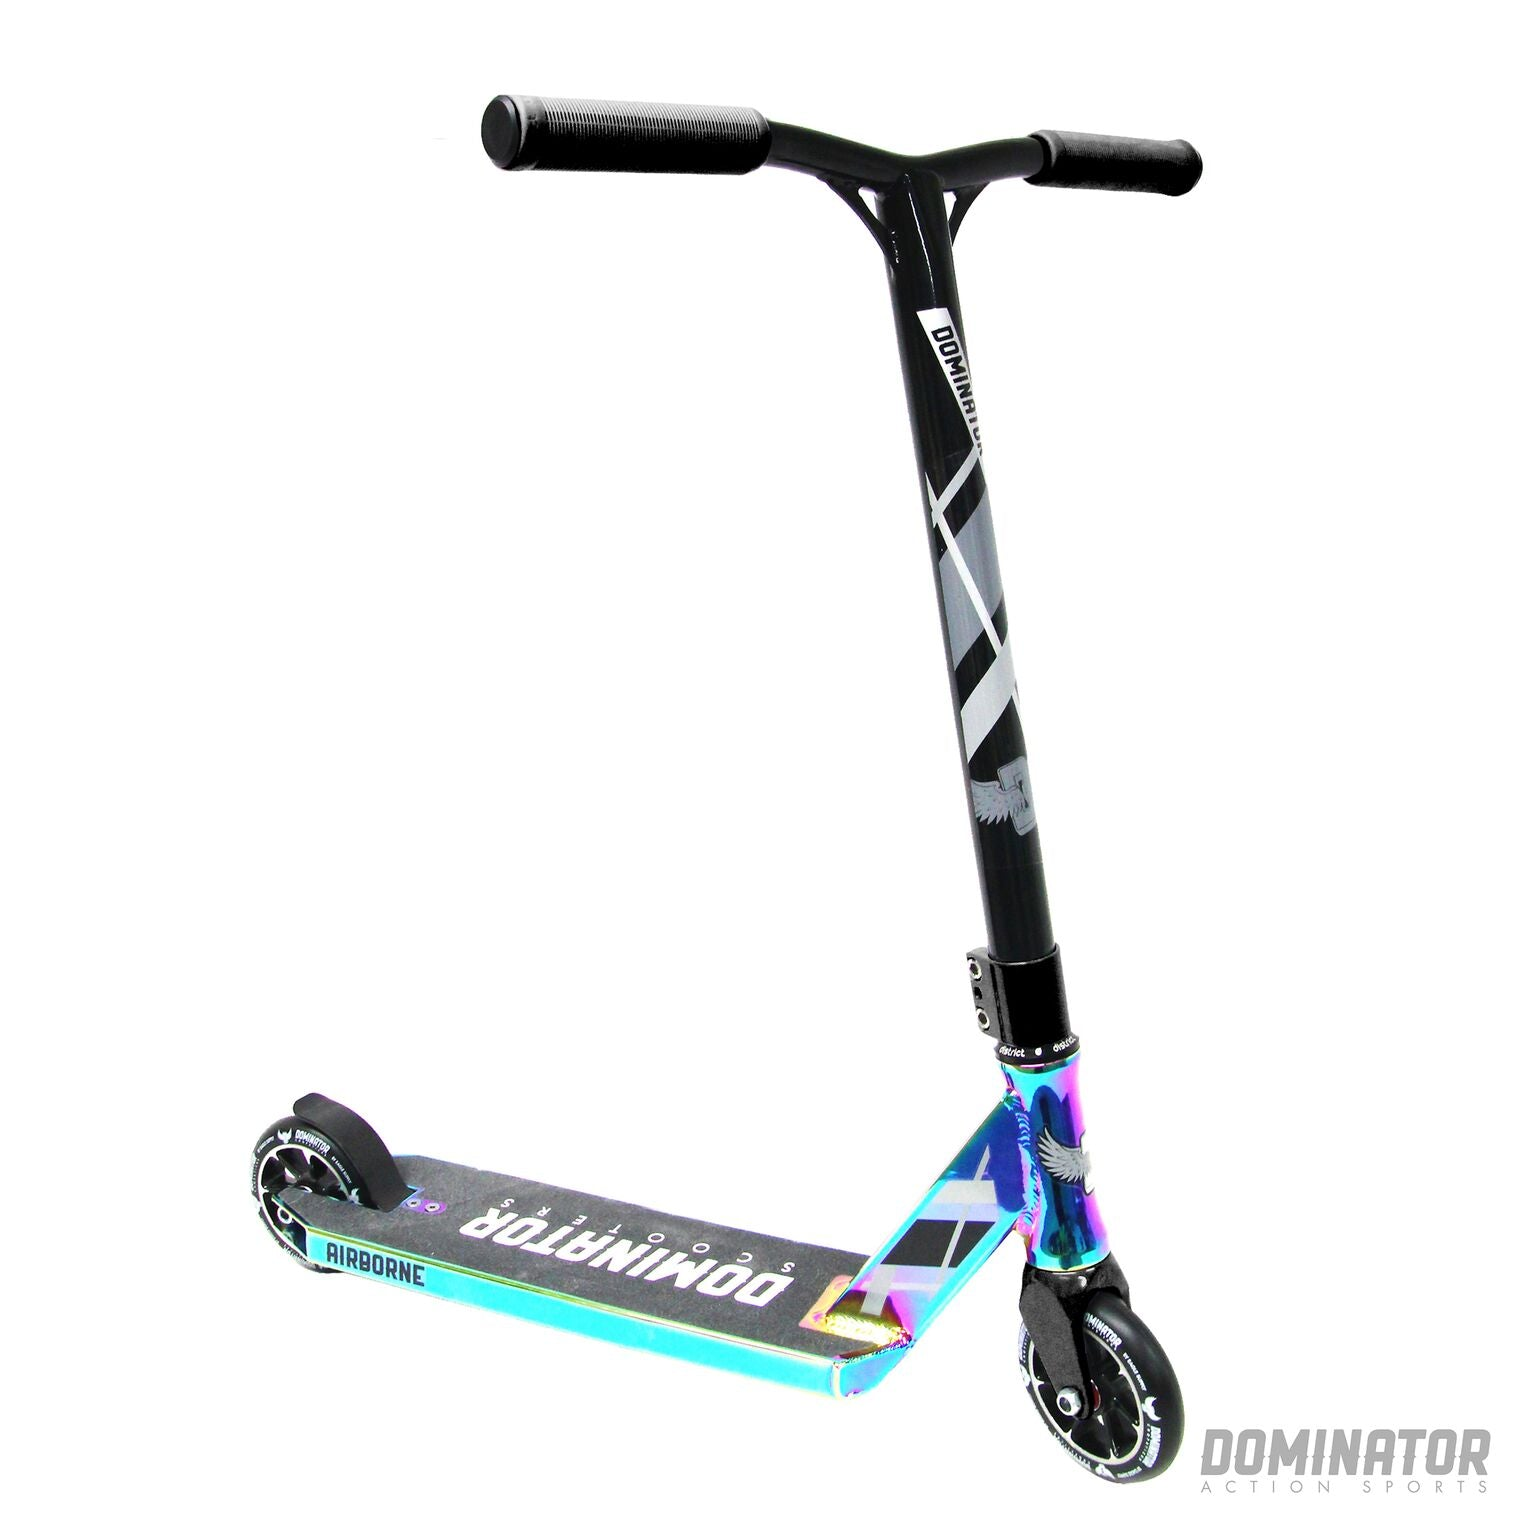 Dominator Mini Airborne Complete Scooter